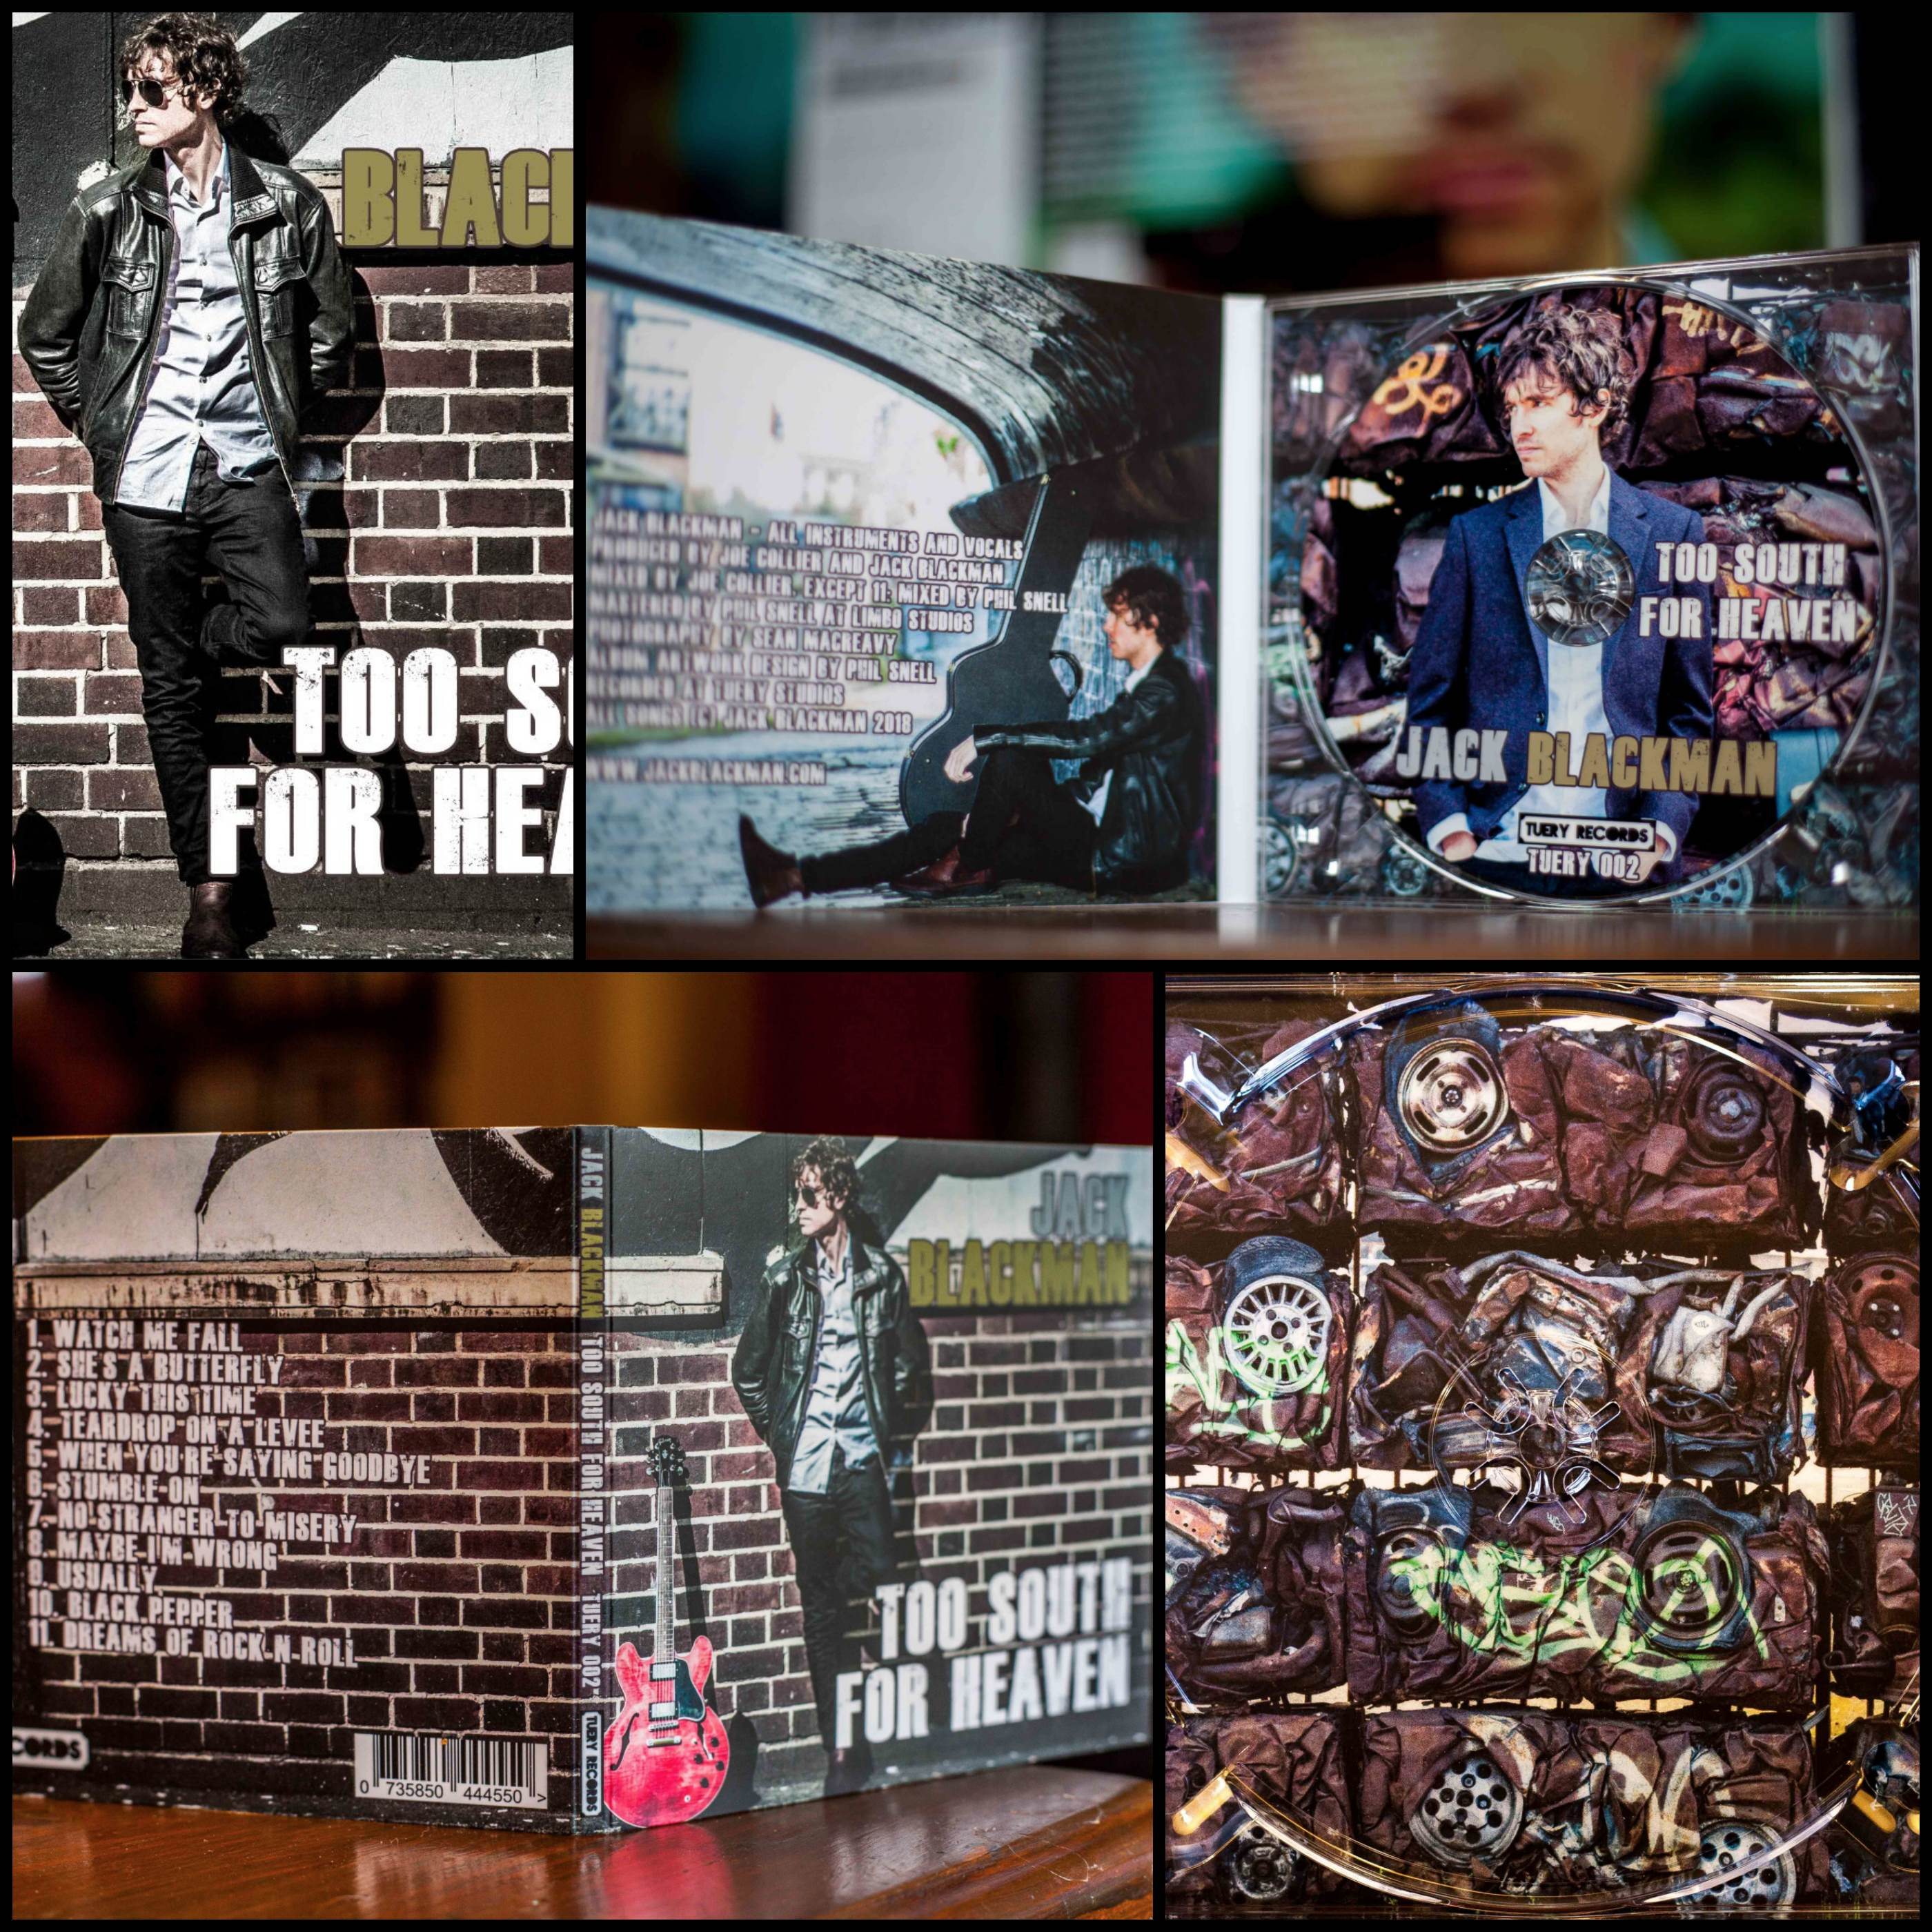 JB album collage